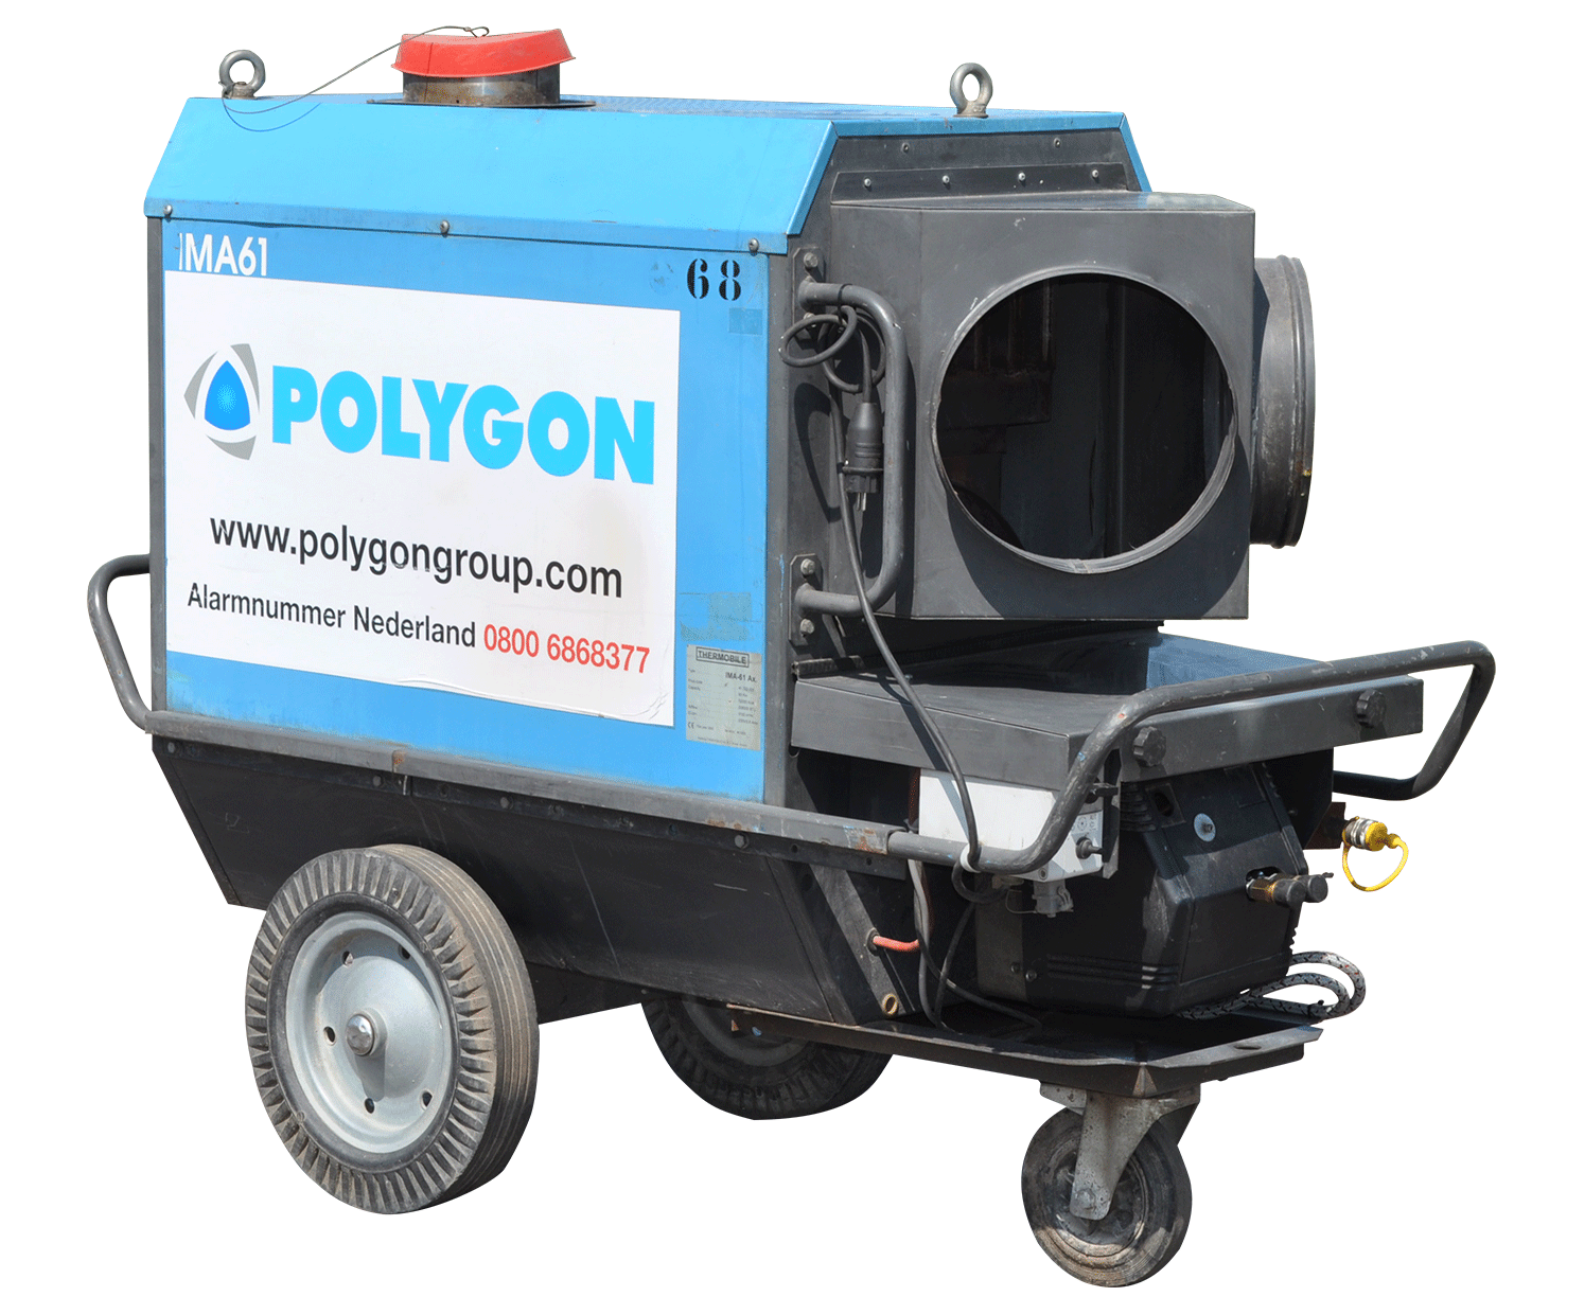 Polygon heater MOH-61